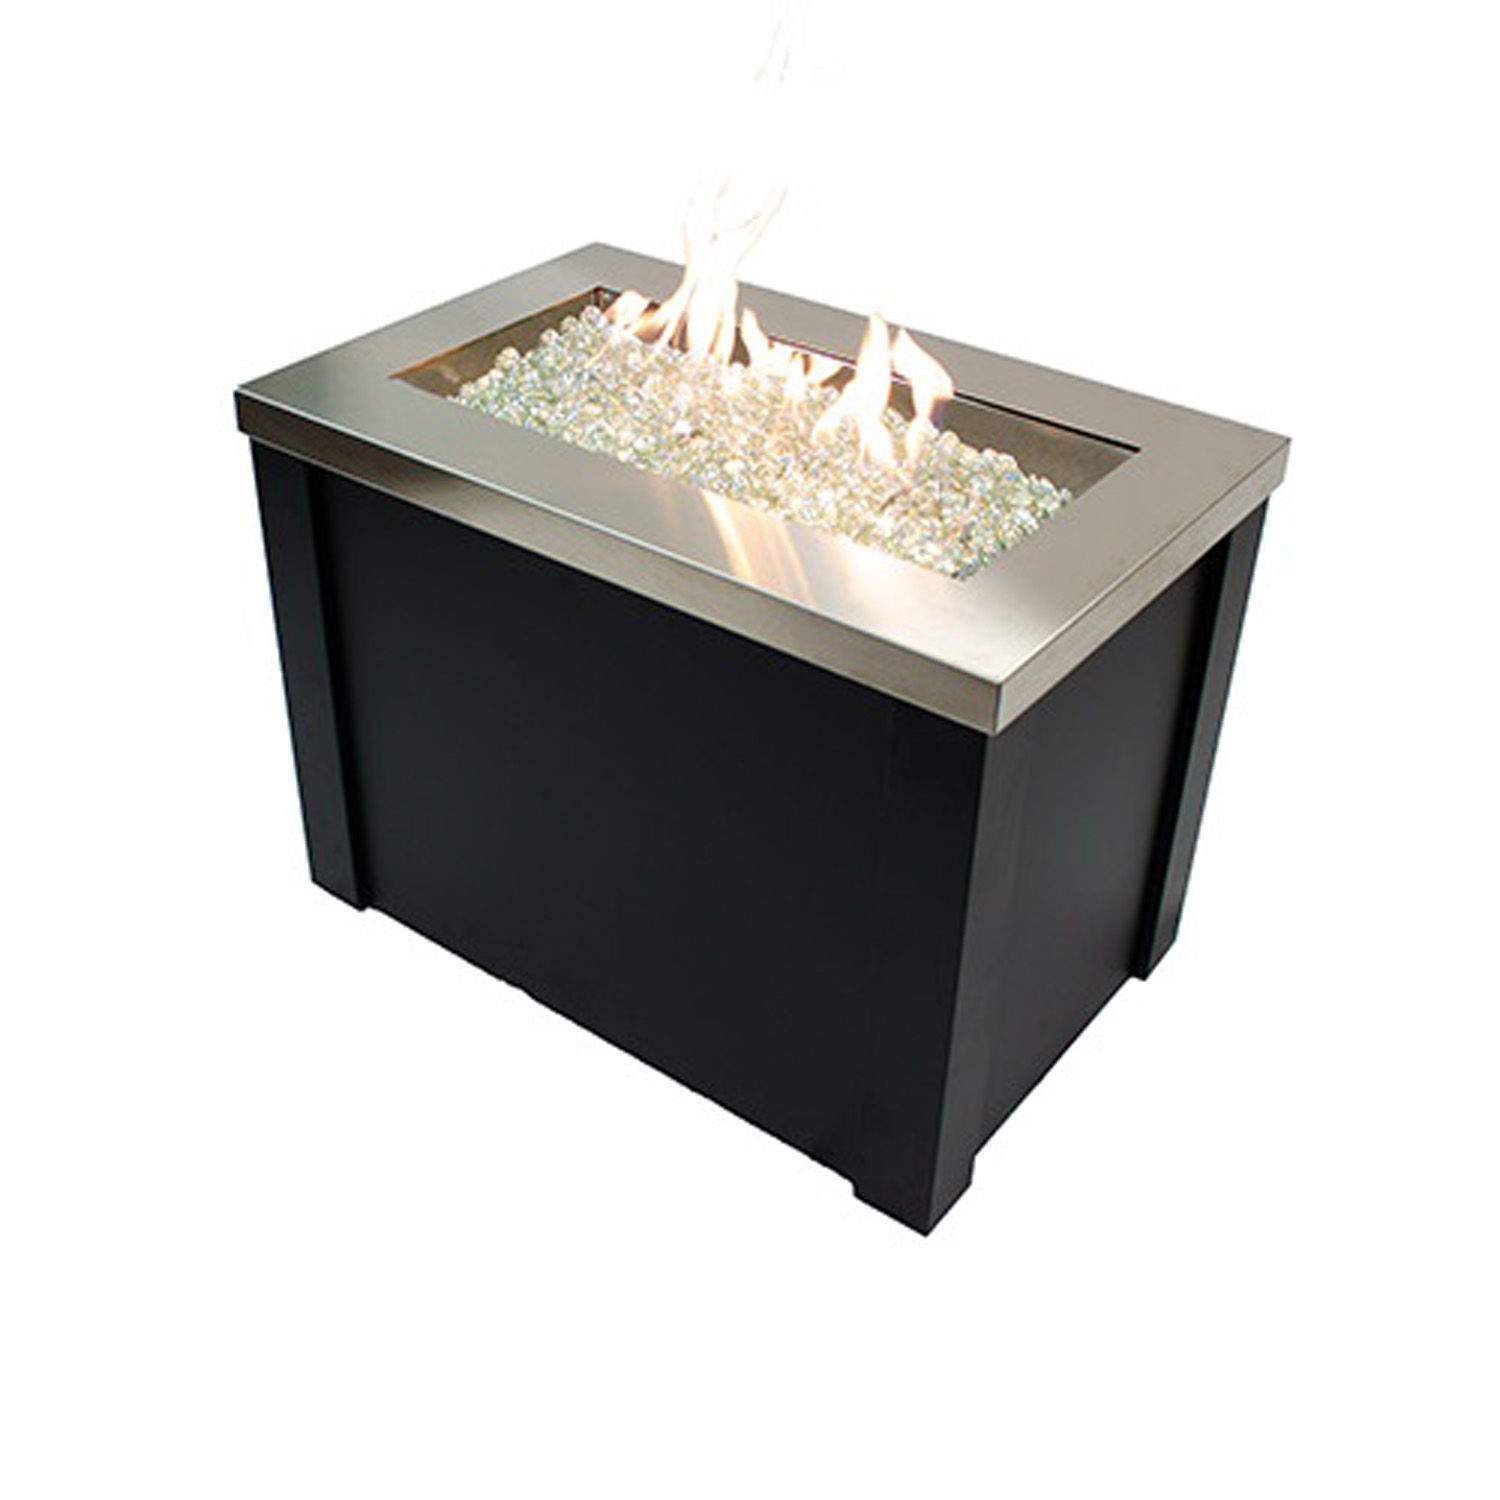 Outdoor Greatroom Providence Gas Fire Pit Table Stainless Steel New EBay